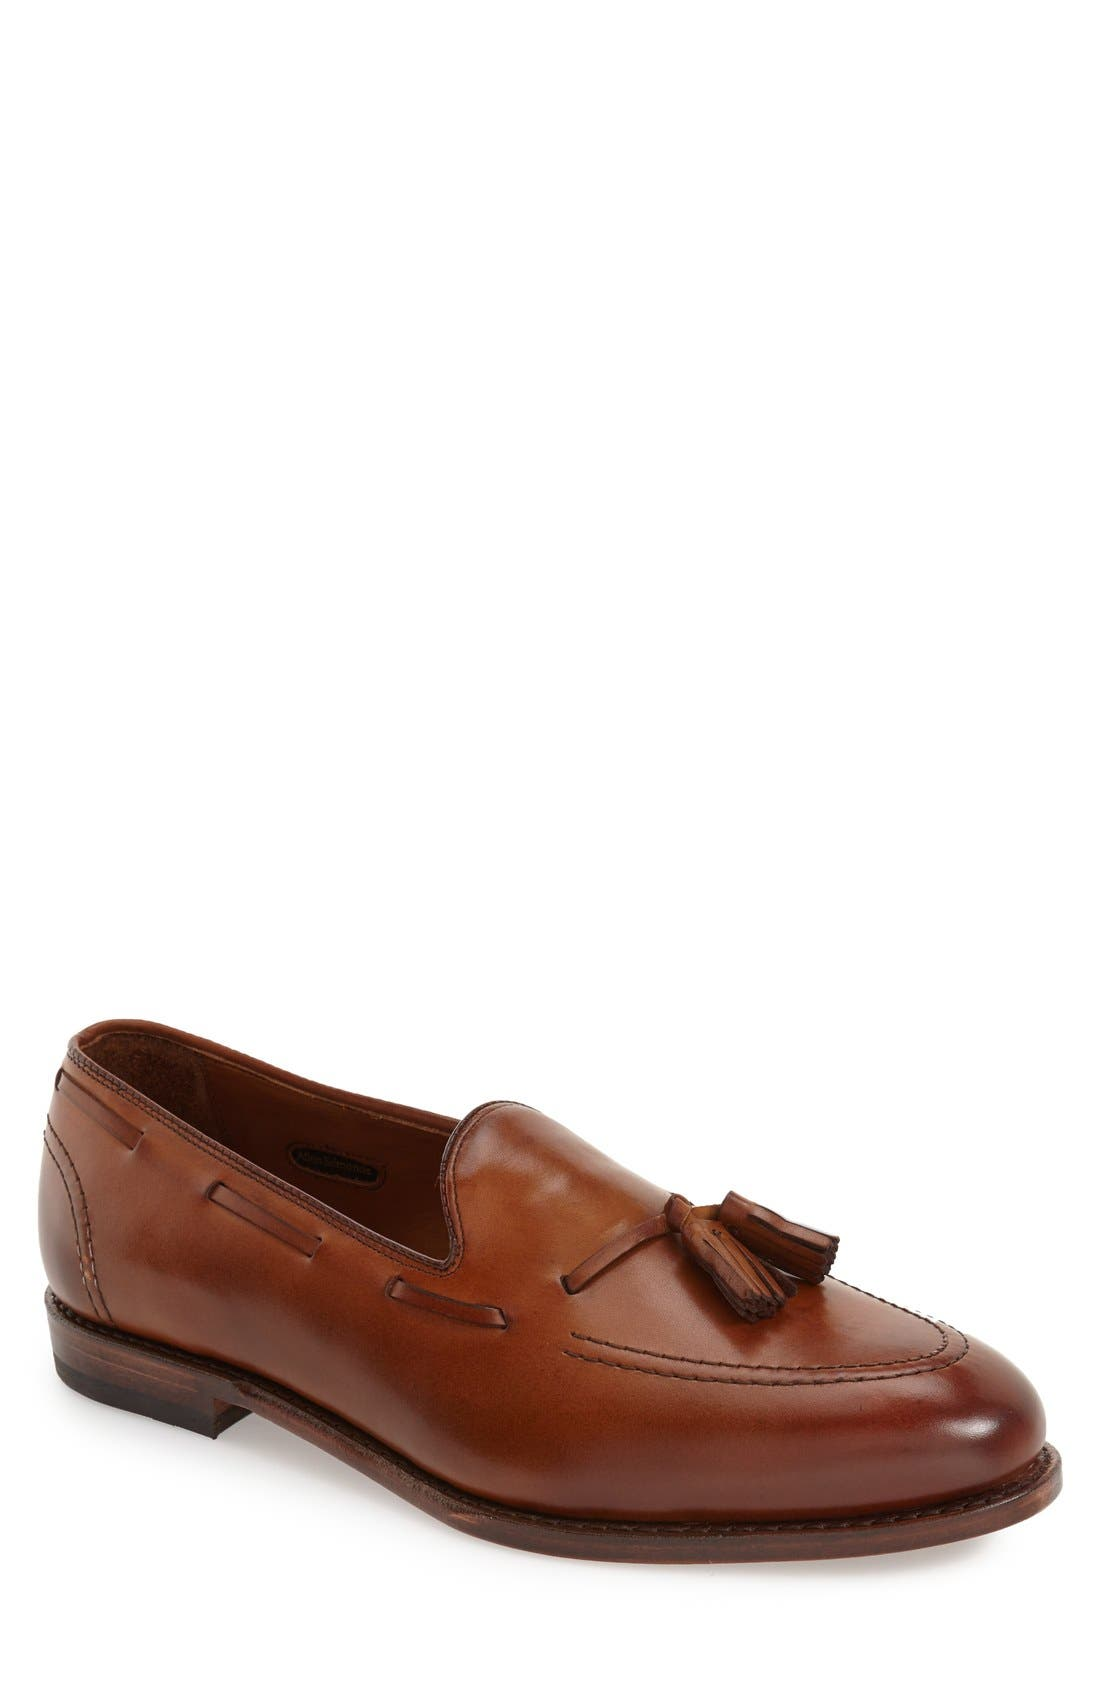 ALLEN EDMONDS 'Acheson' Tassel Loafer, Main, color, WALNUT